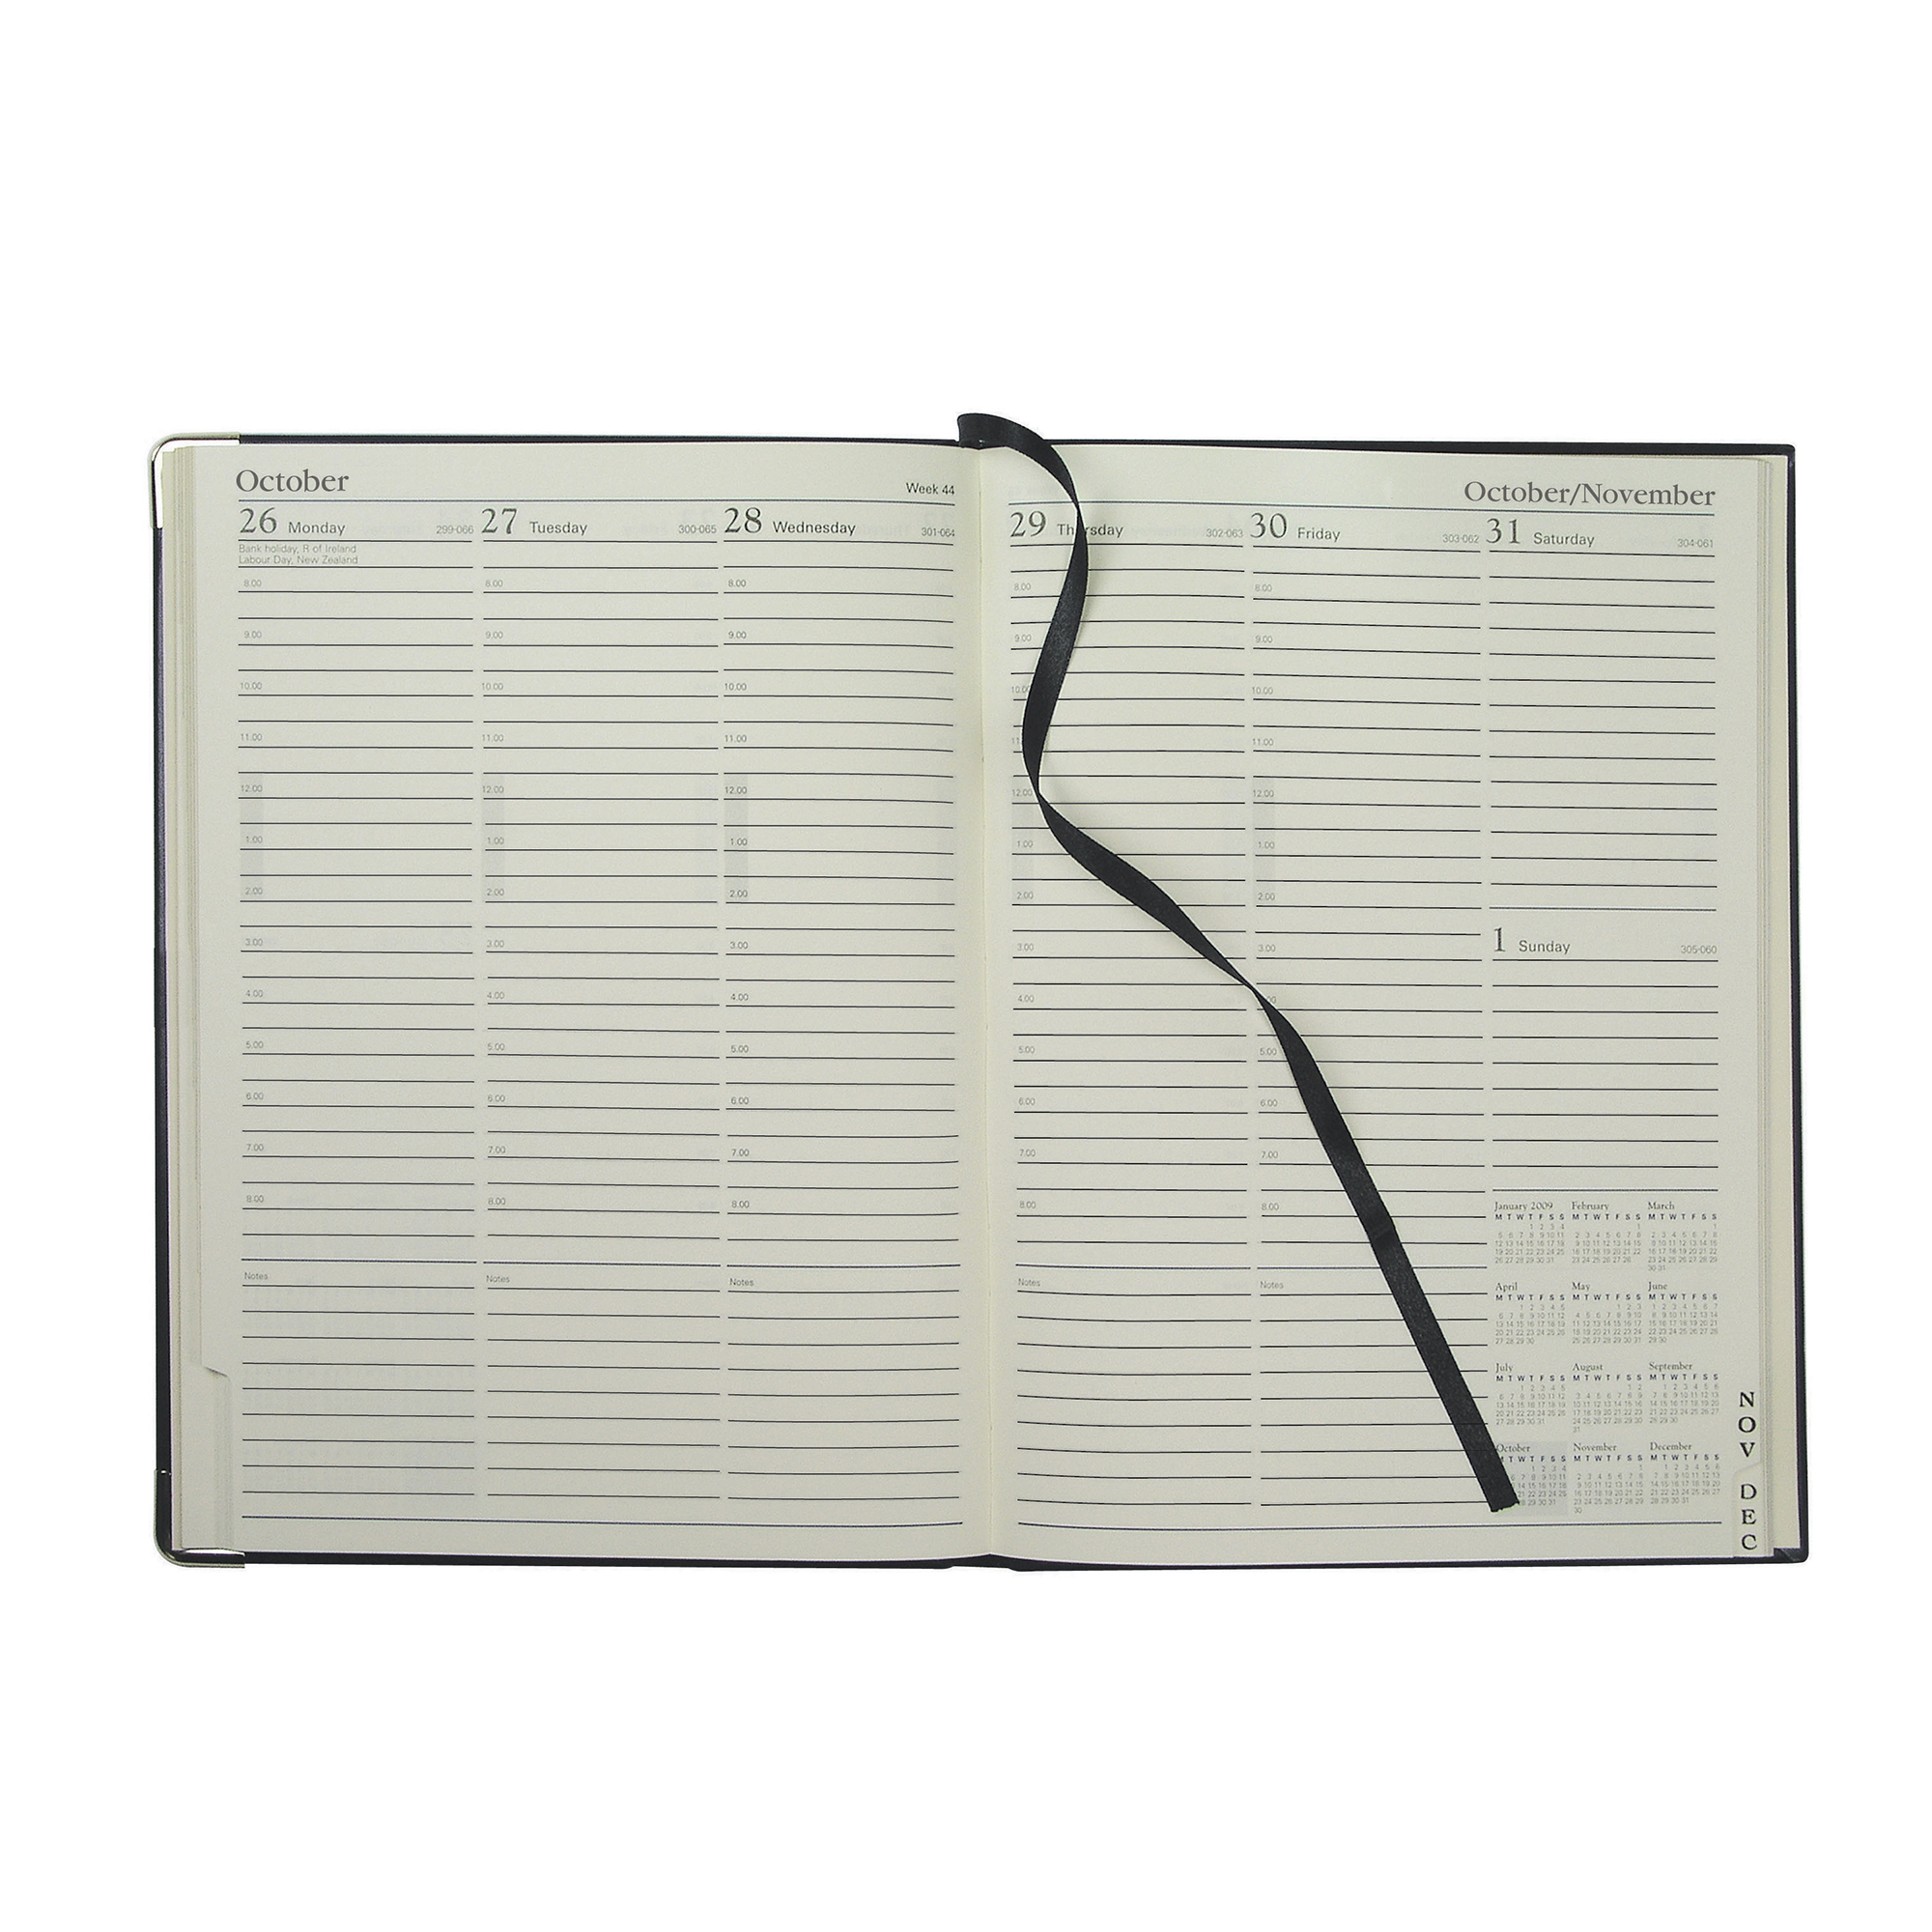 Collins 2020 Classic Compact Diary Week to View Sewn Binding 190x260mm Black Ref 1210V 2020